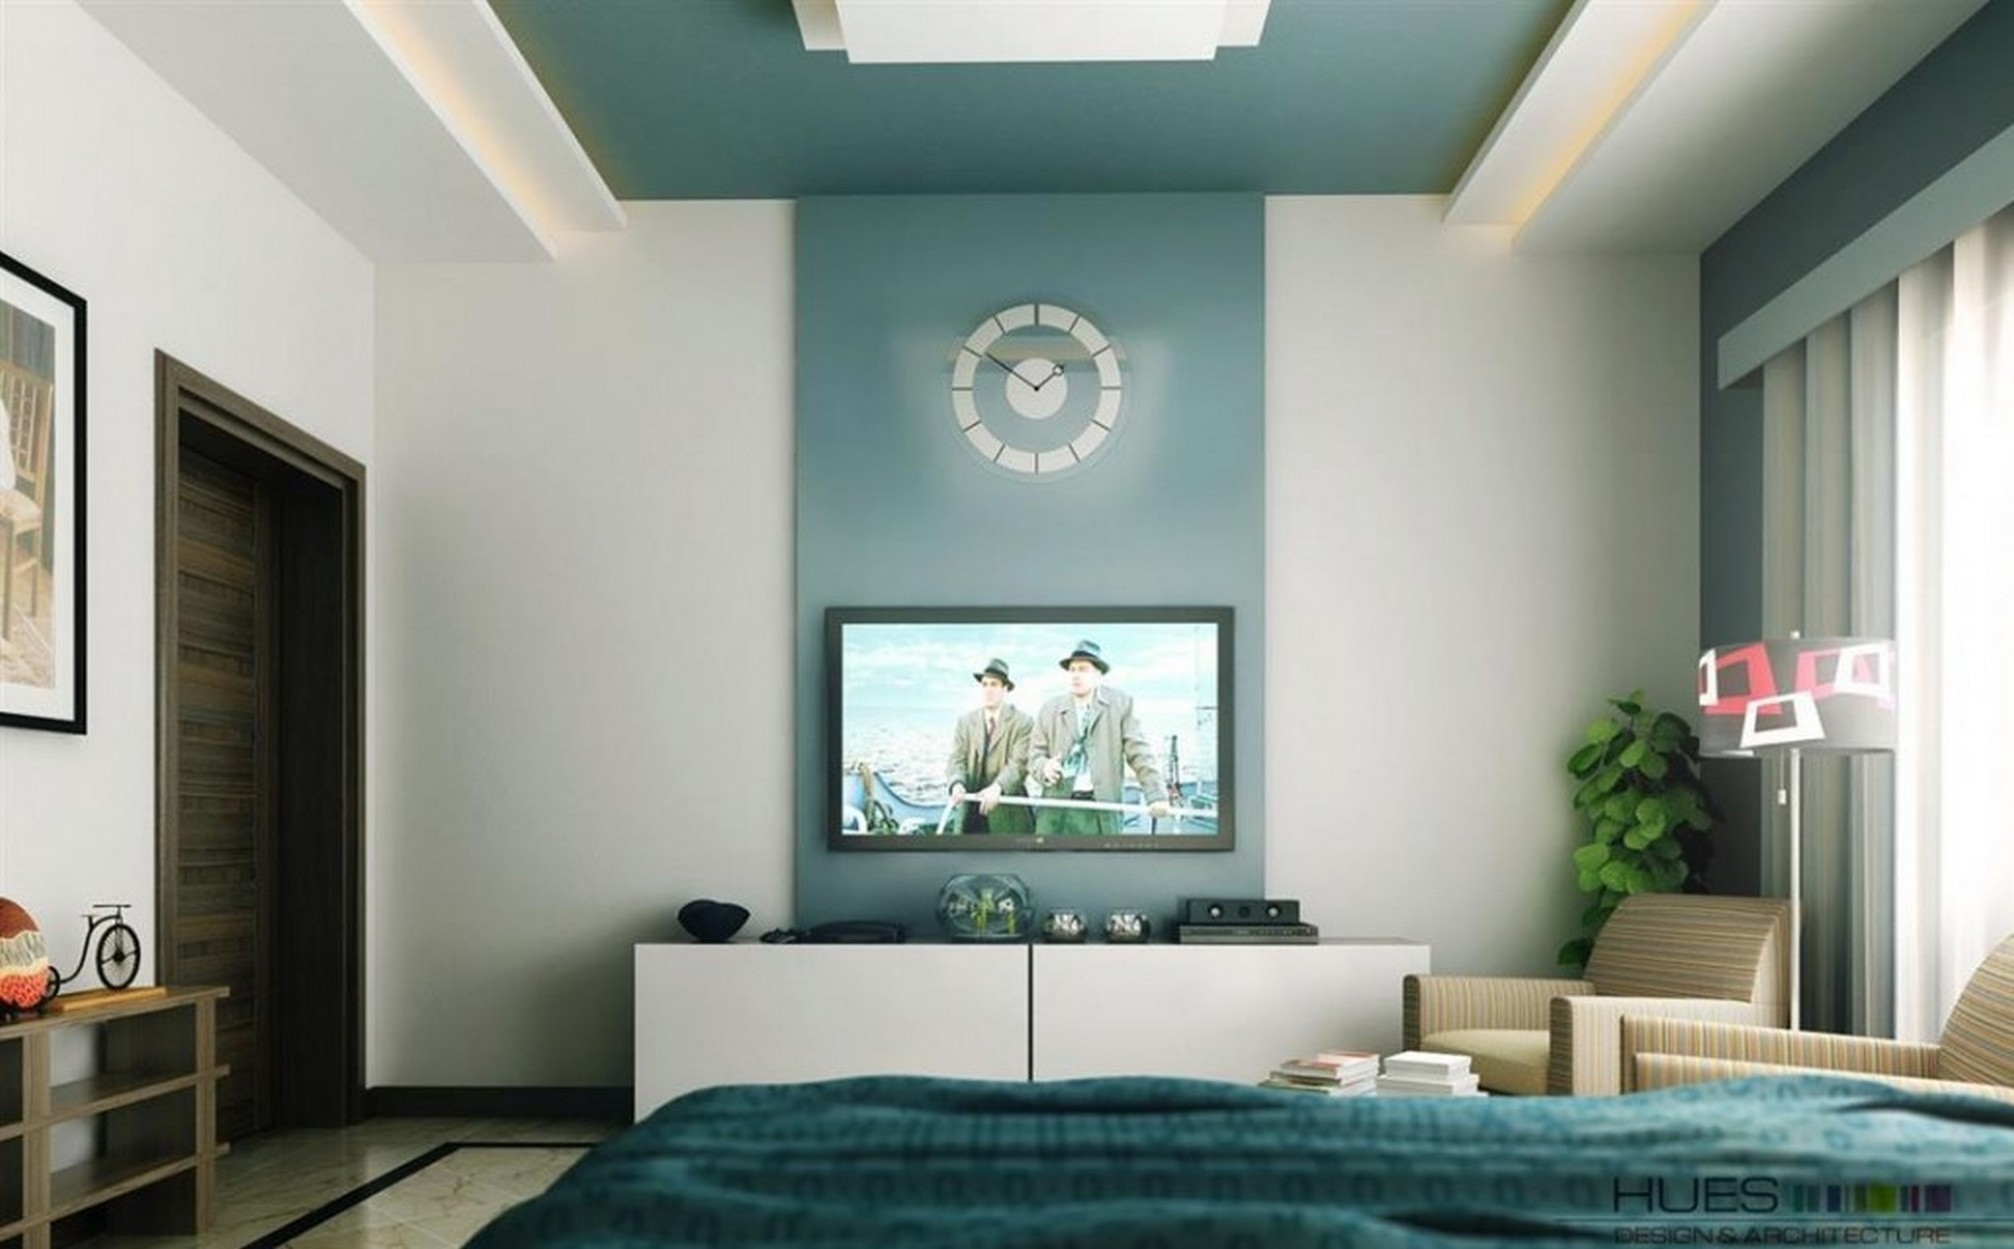 Accent Wall Color For High Walls With Round Clock Ideas And Tv On Intended For 2018 Neutral Color Wall Accents (View 1 of 15)